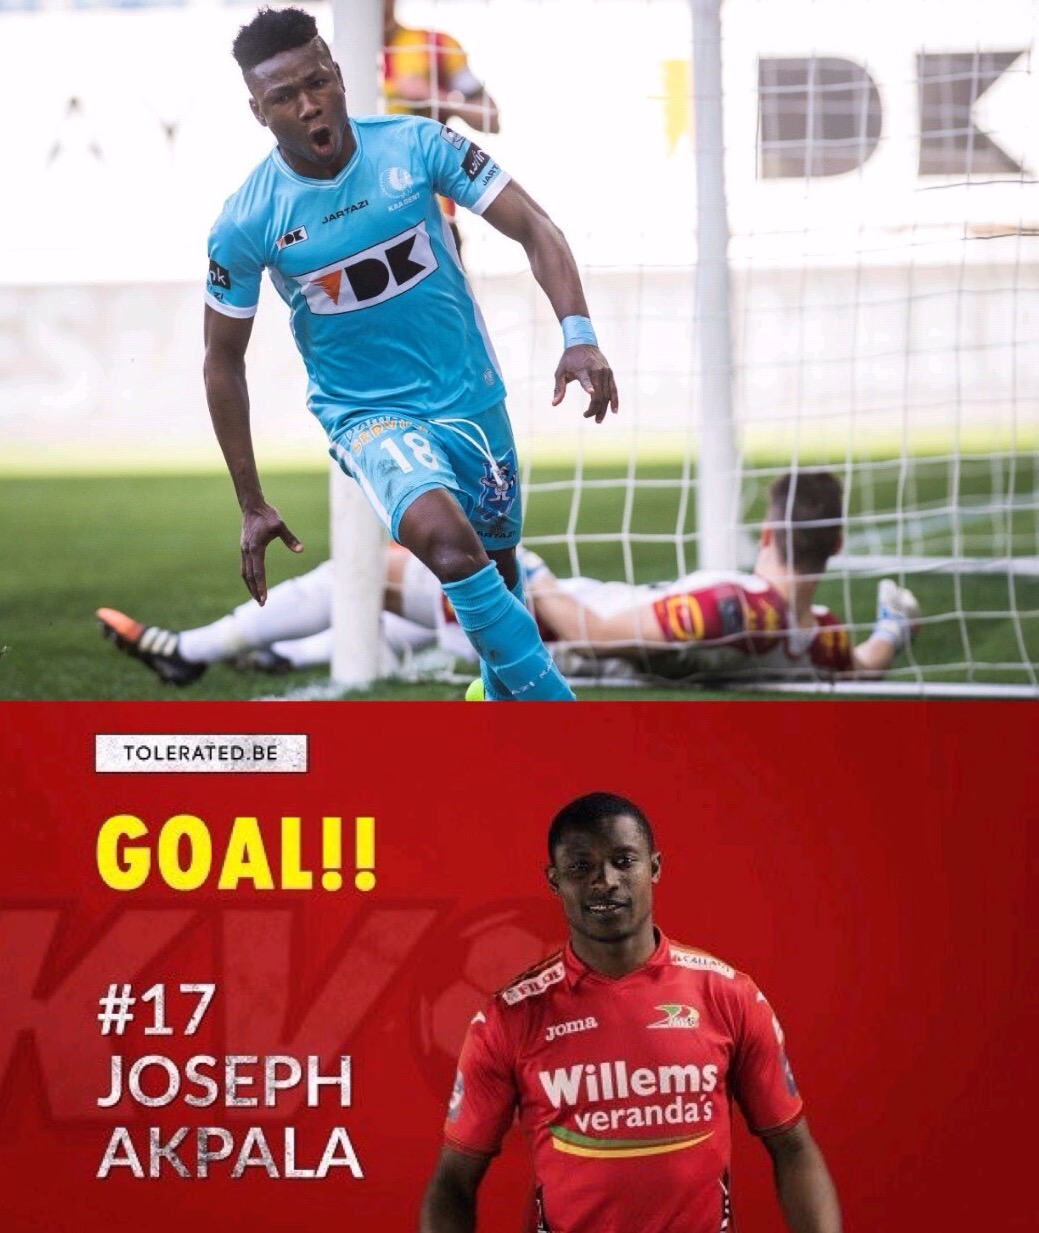 Kalu, Akpala Score As Gent, Oostende Qualify For Title Play-offs; Ajagun, Salami Also on Target